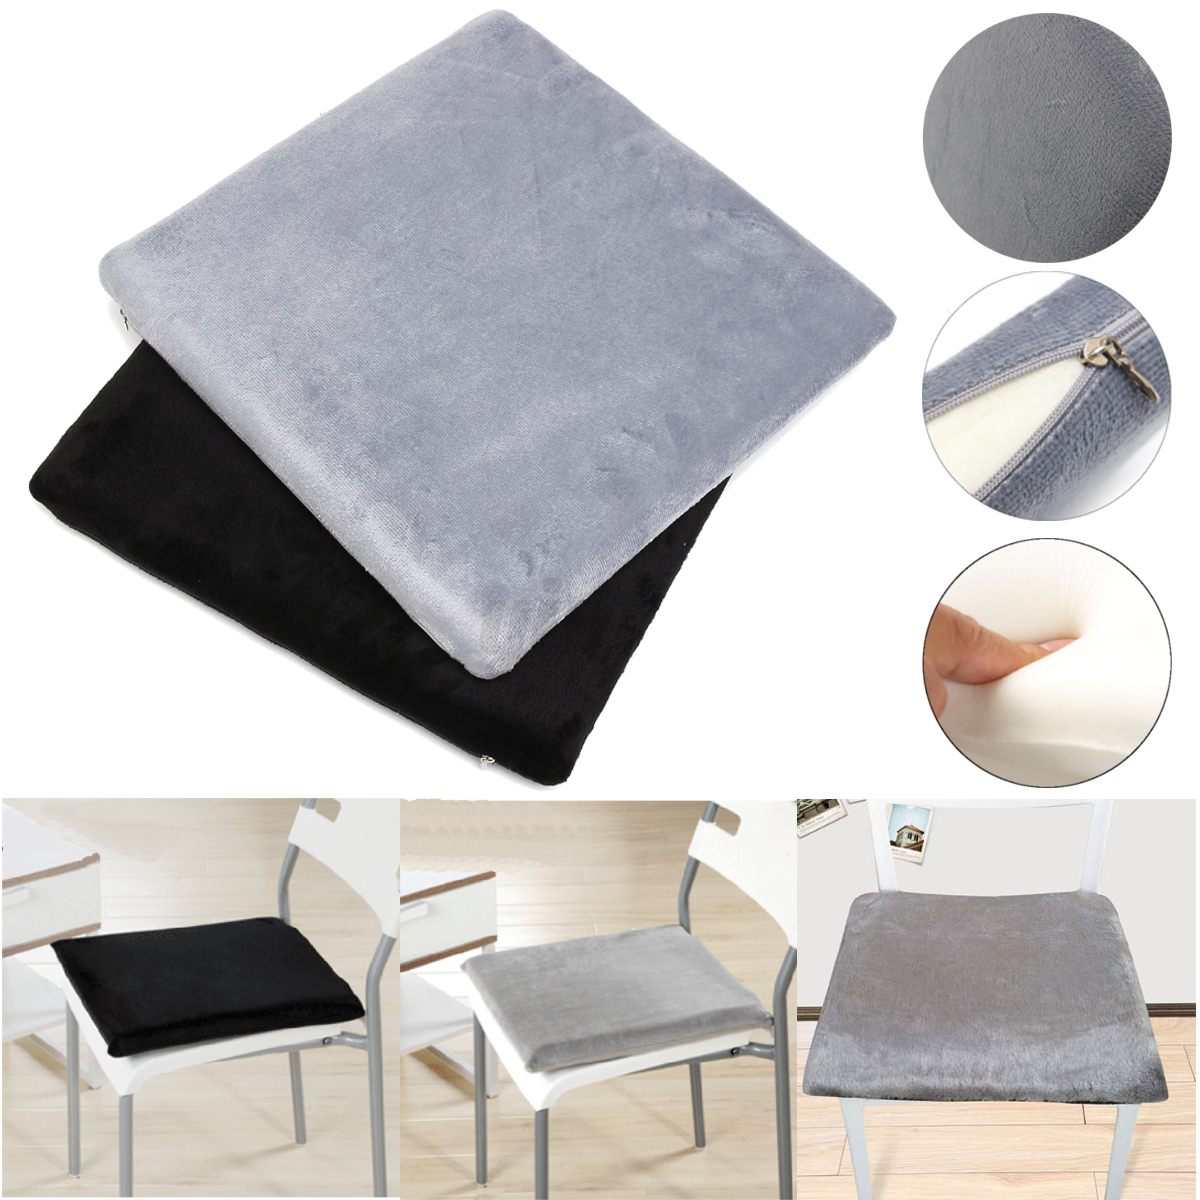 back pain office chair cushion anti gravity lawn memory foam home car seat